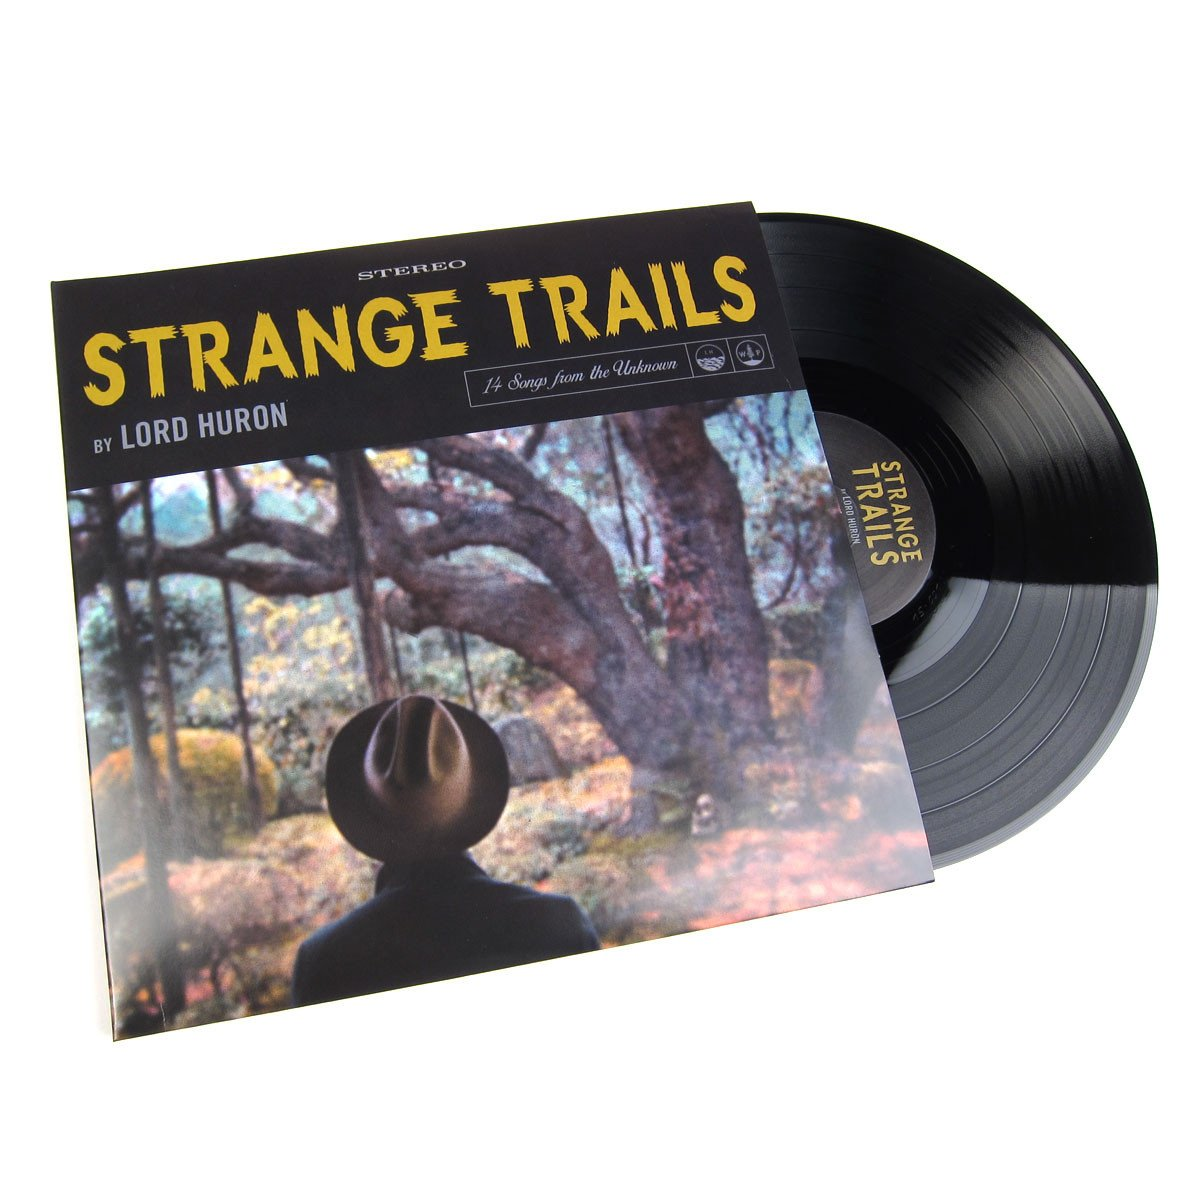 Lord Huron: Vinyl LP Album Pack (Lonesome Dreams, Strange Trails)